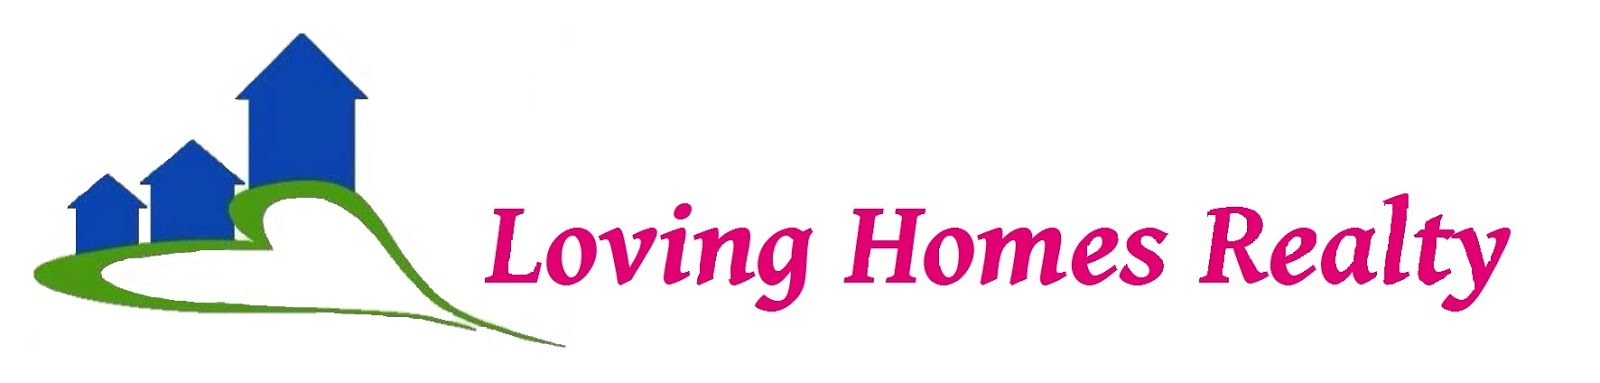 Installment Homes by Loving Homes Realty